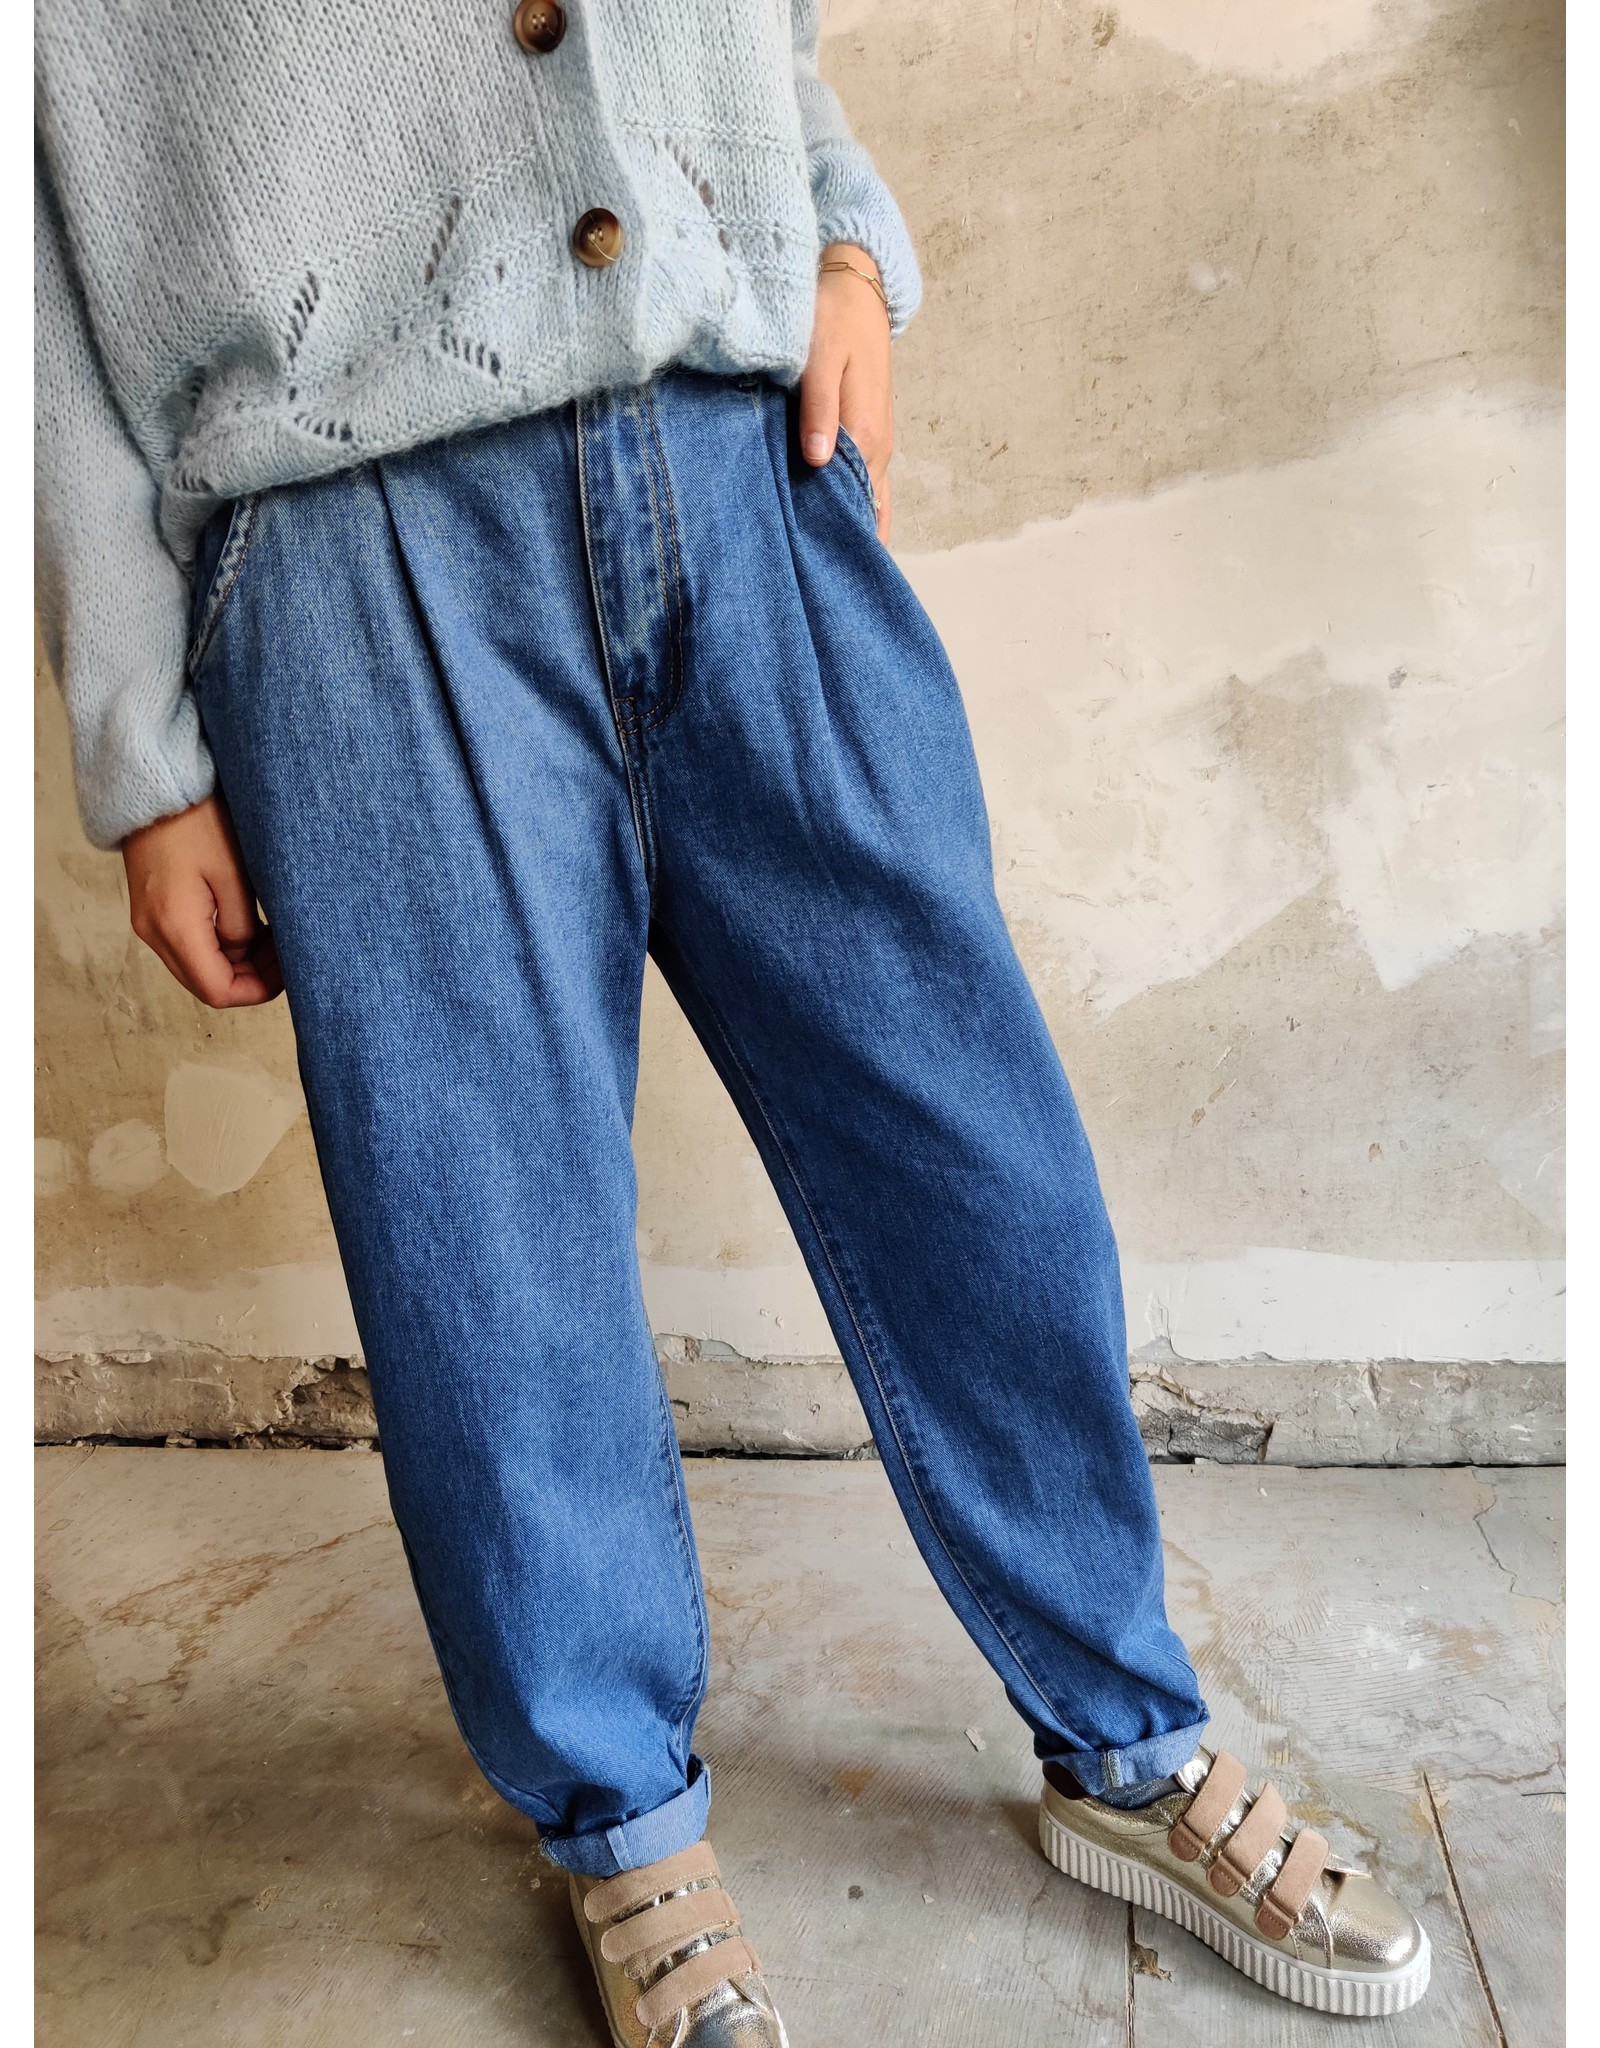 MOM JEANS BLUE